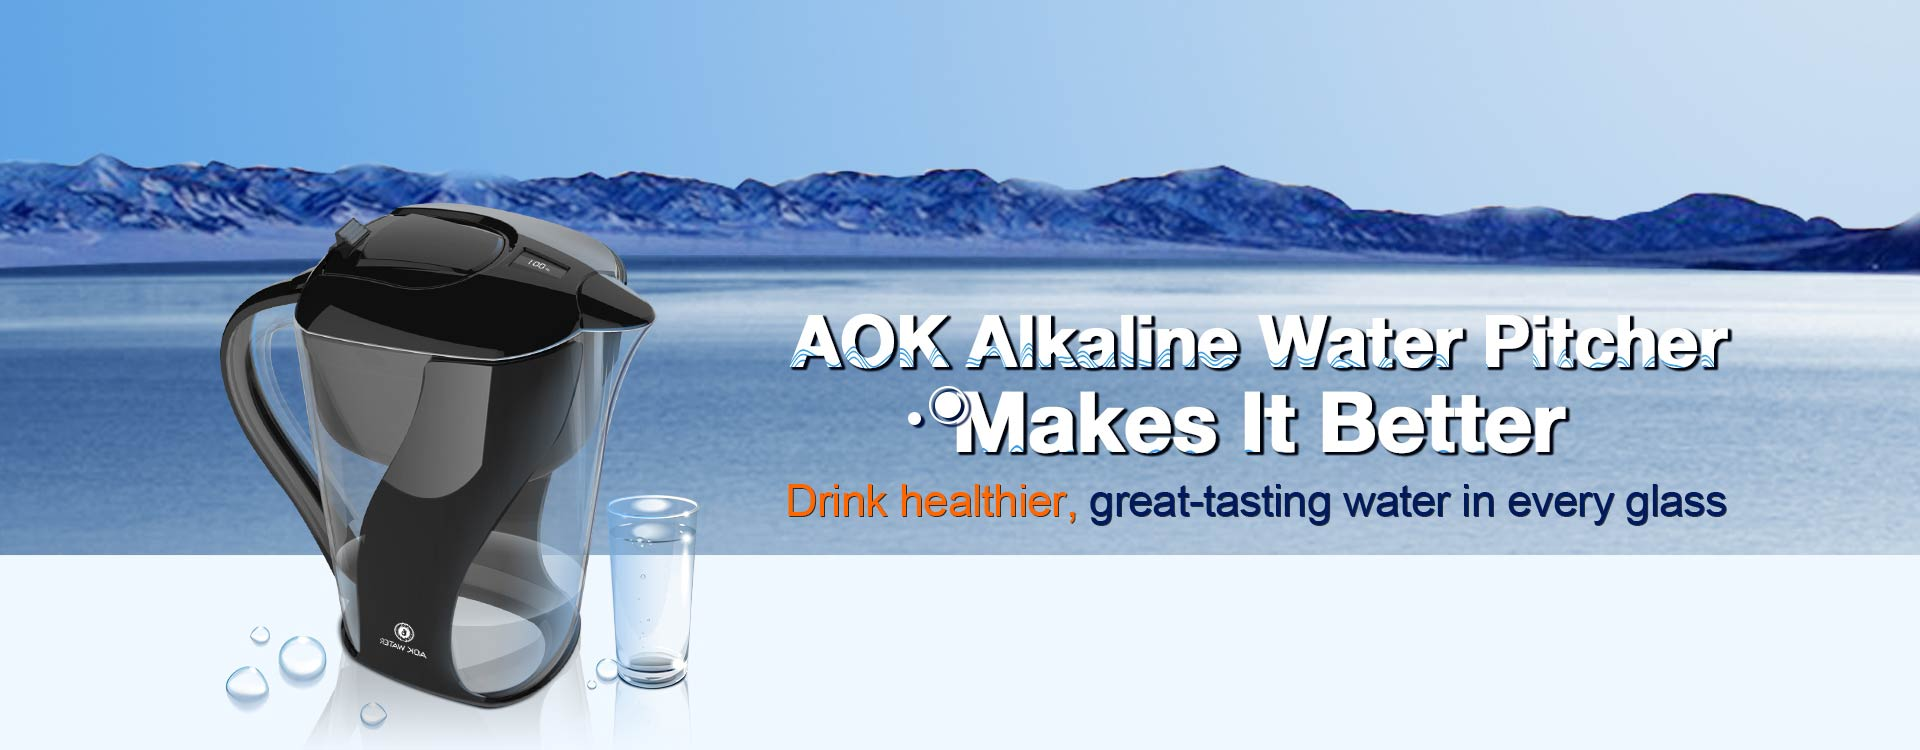 alkaline water pitchers